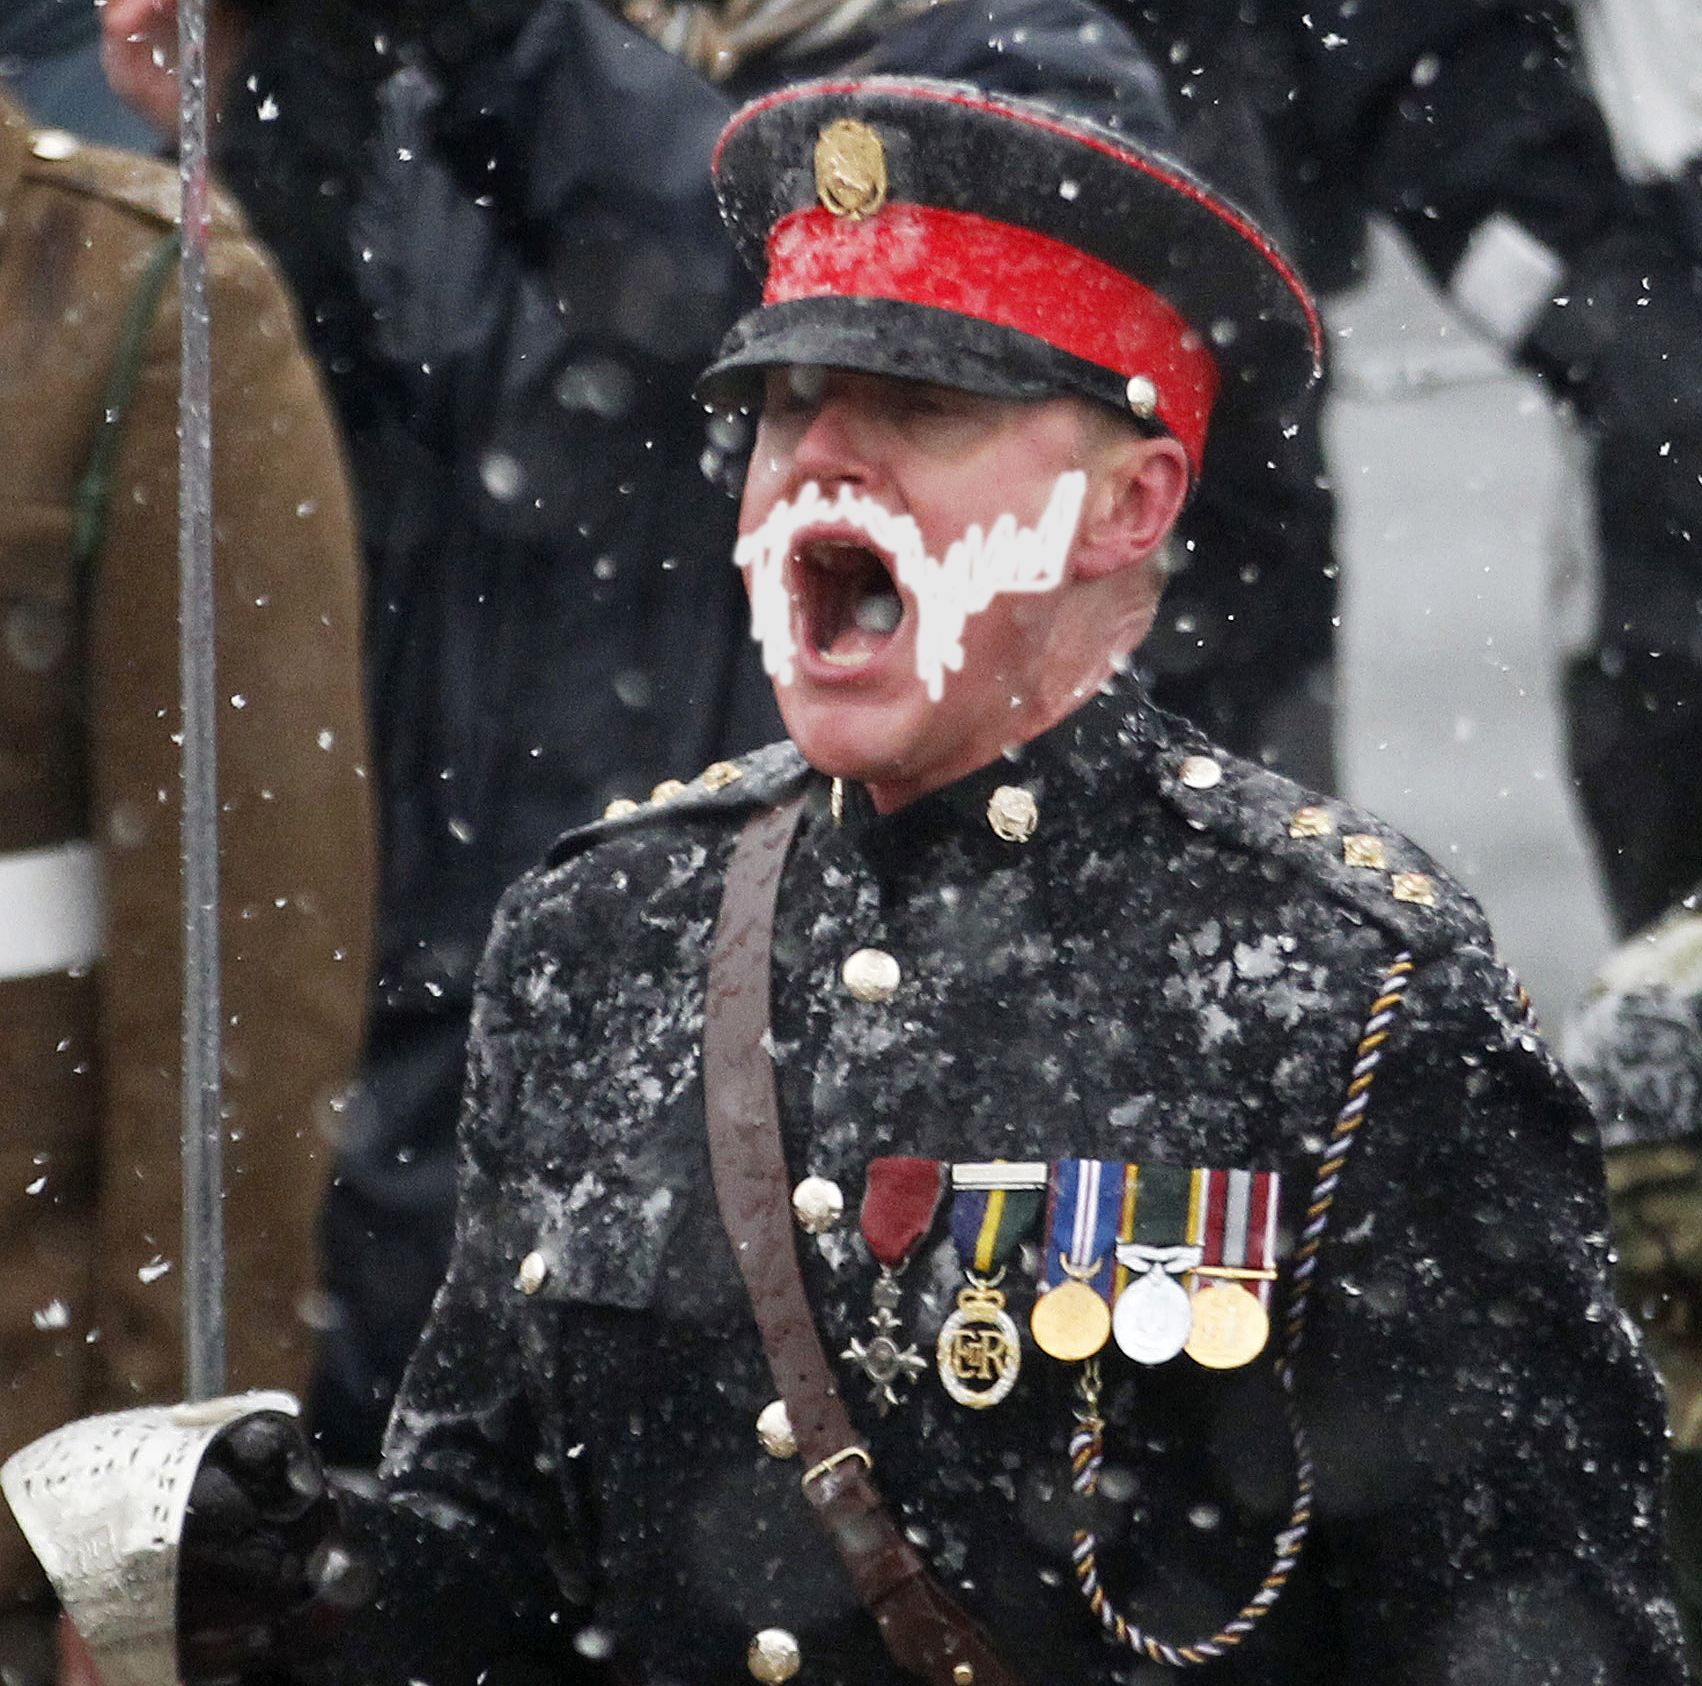 Captain Brownlee during a ceremony to pay homage to the British soldiers who died in the war, in Stanley